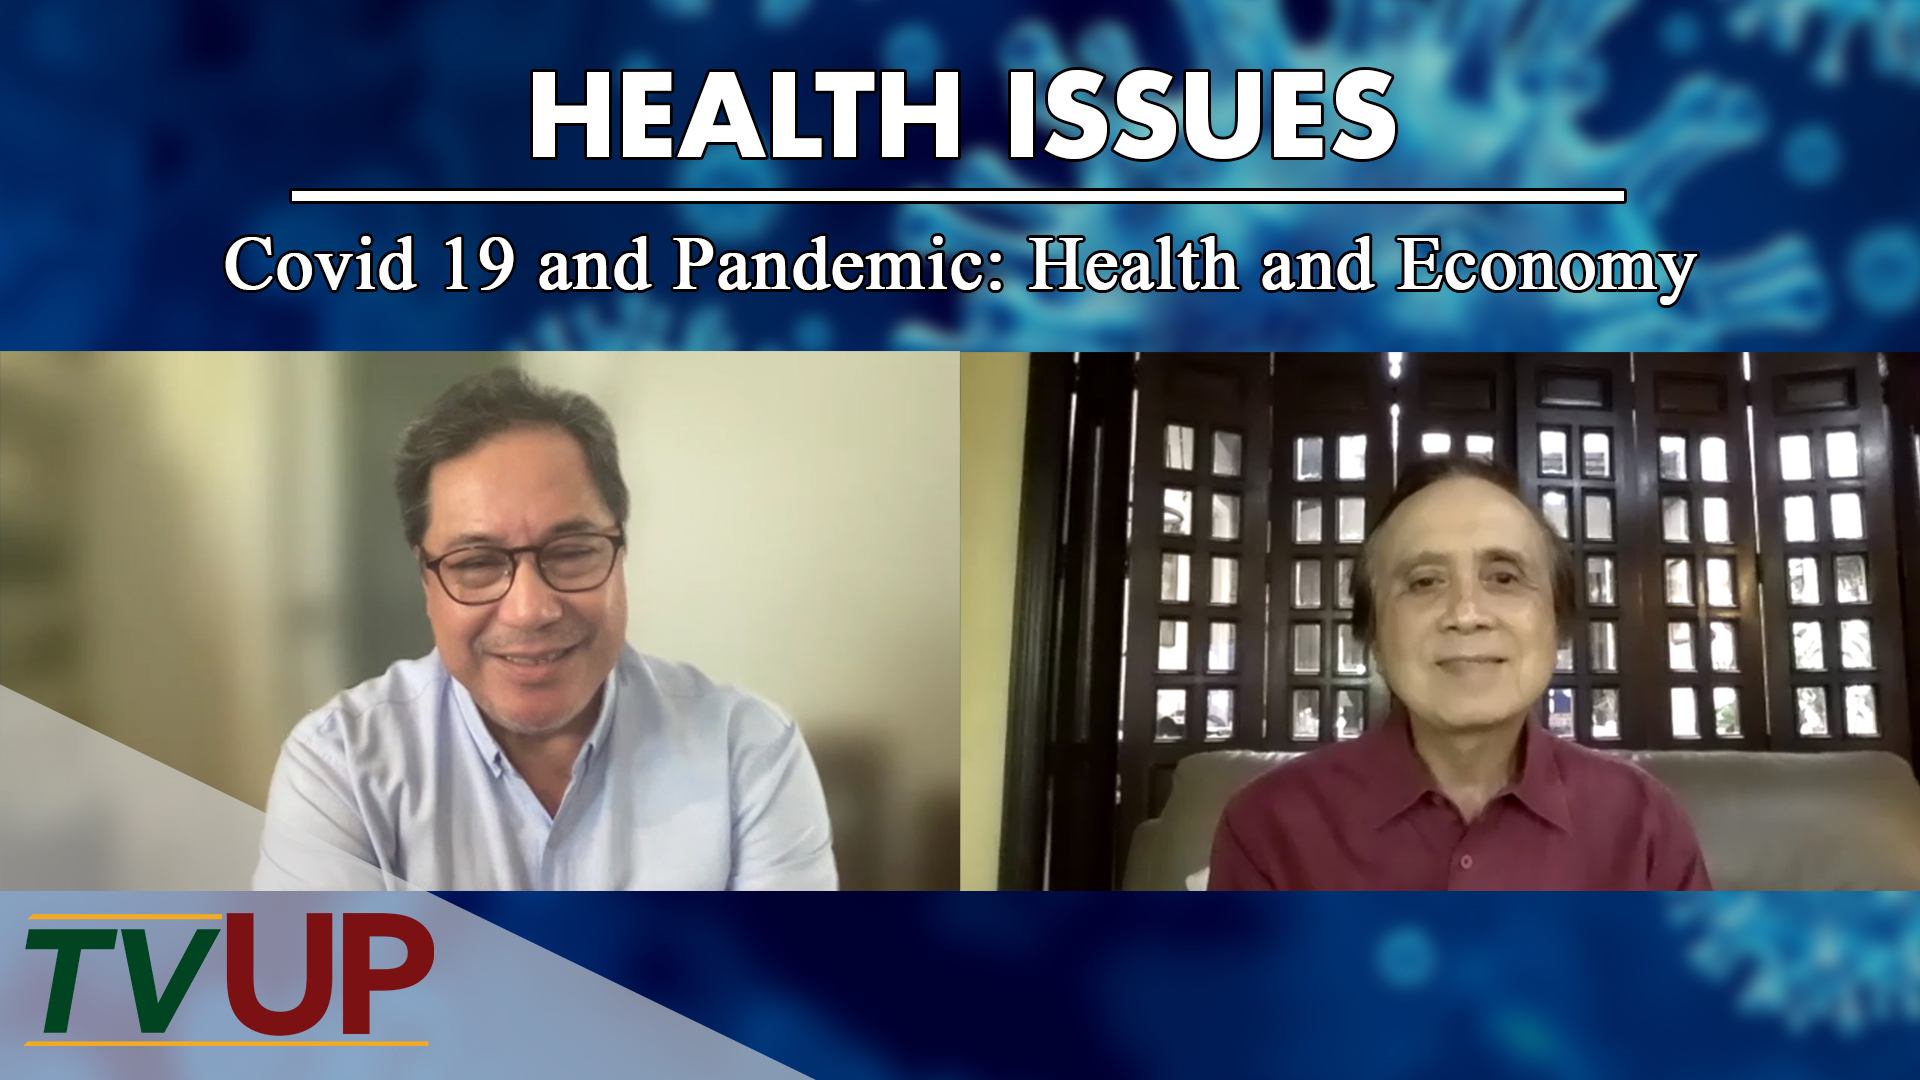 Health Issues | National Action Plan for COVID-19 Pandemic